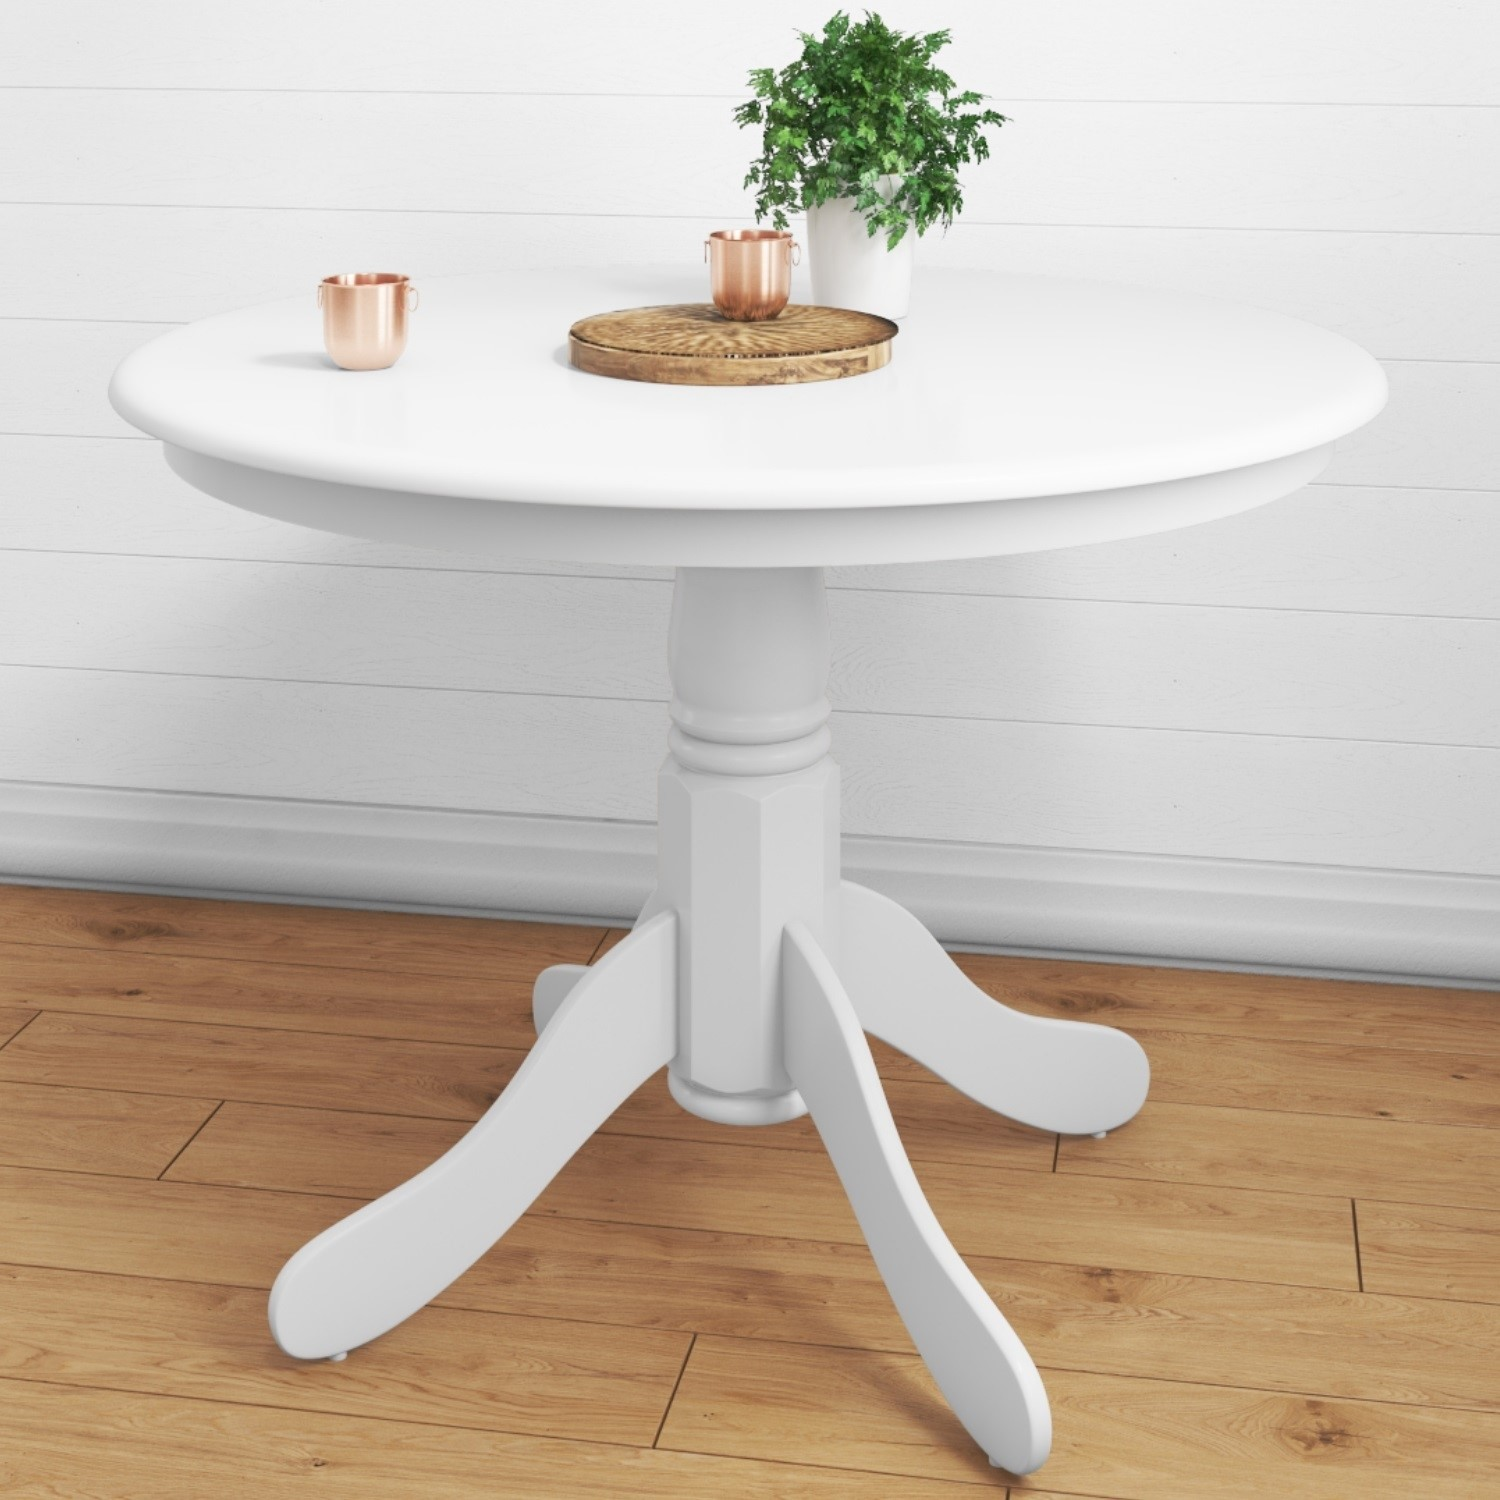 Details about Rhode Island White Round Pedestal Dining Table - 4 Seater  RHD010